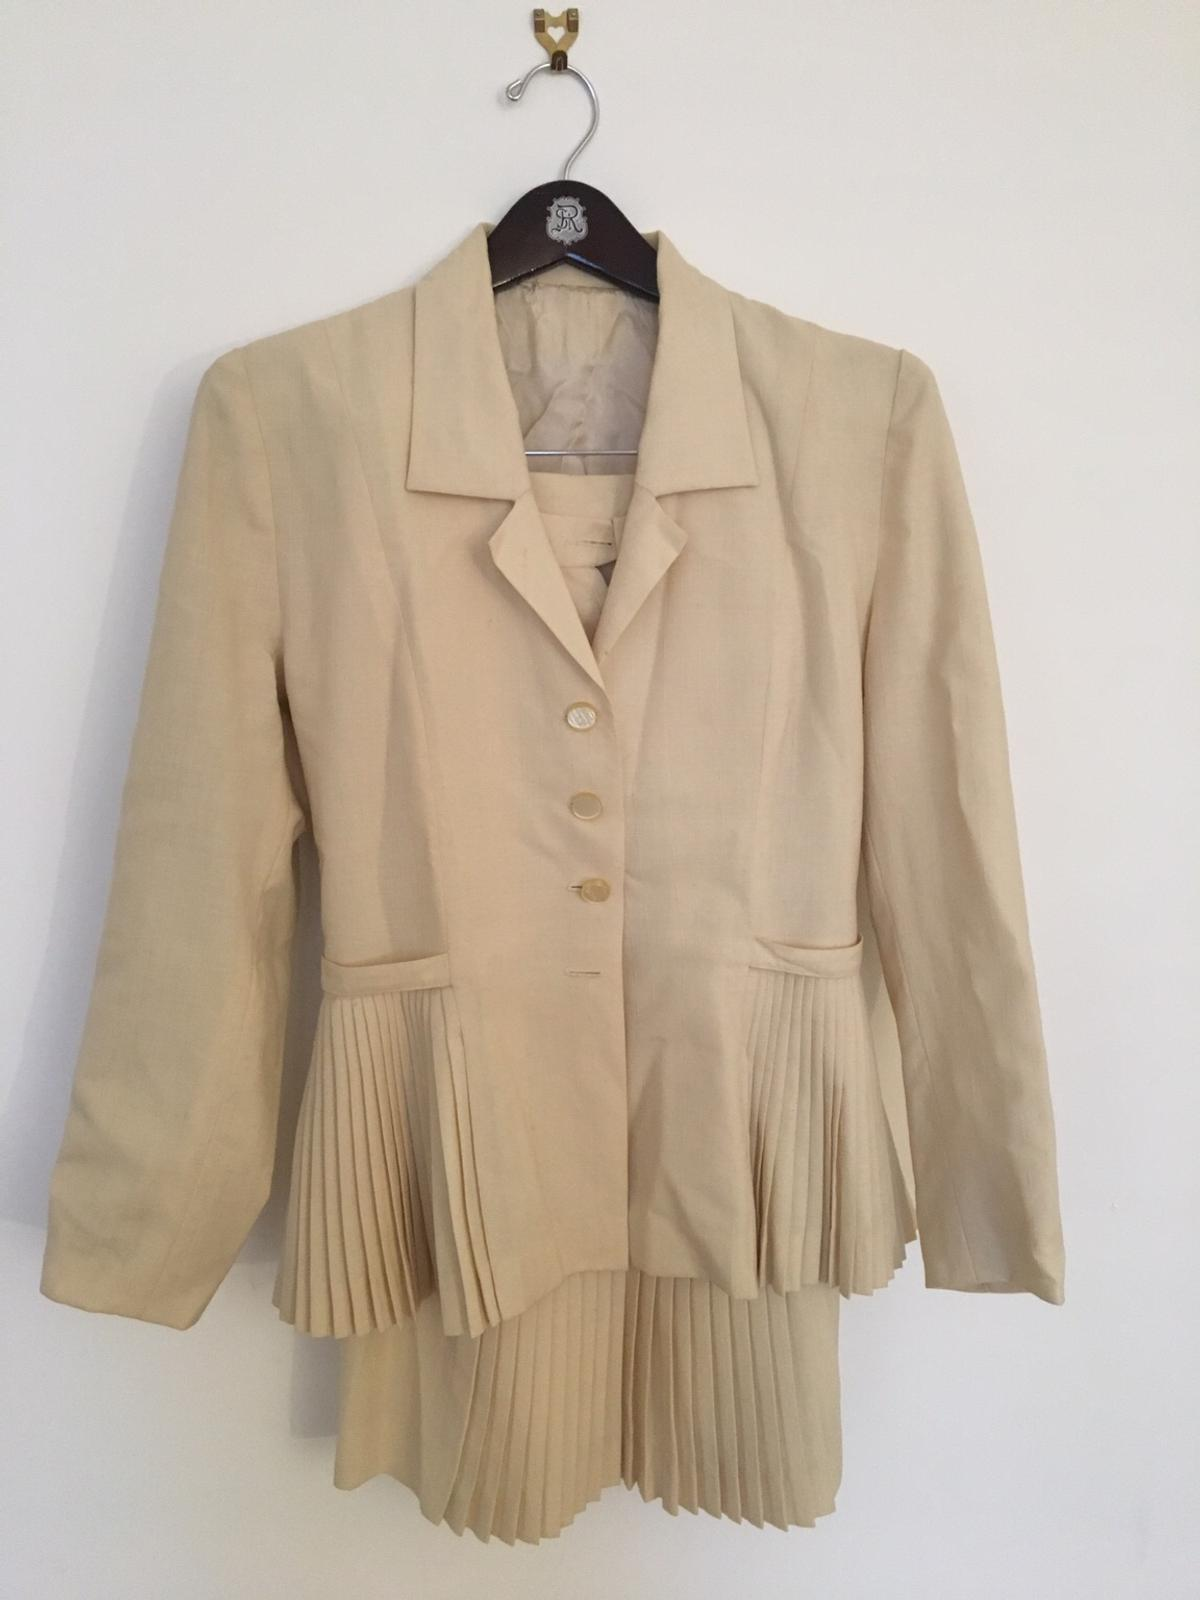 Vintage 1940s Skirt And Jacket Size 8 10 In Sw4 London For 20 00 For Sale Shpock